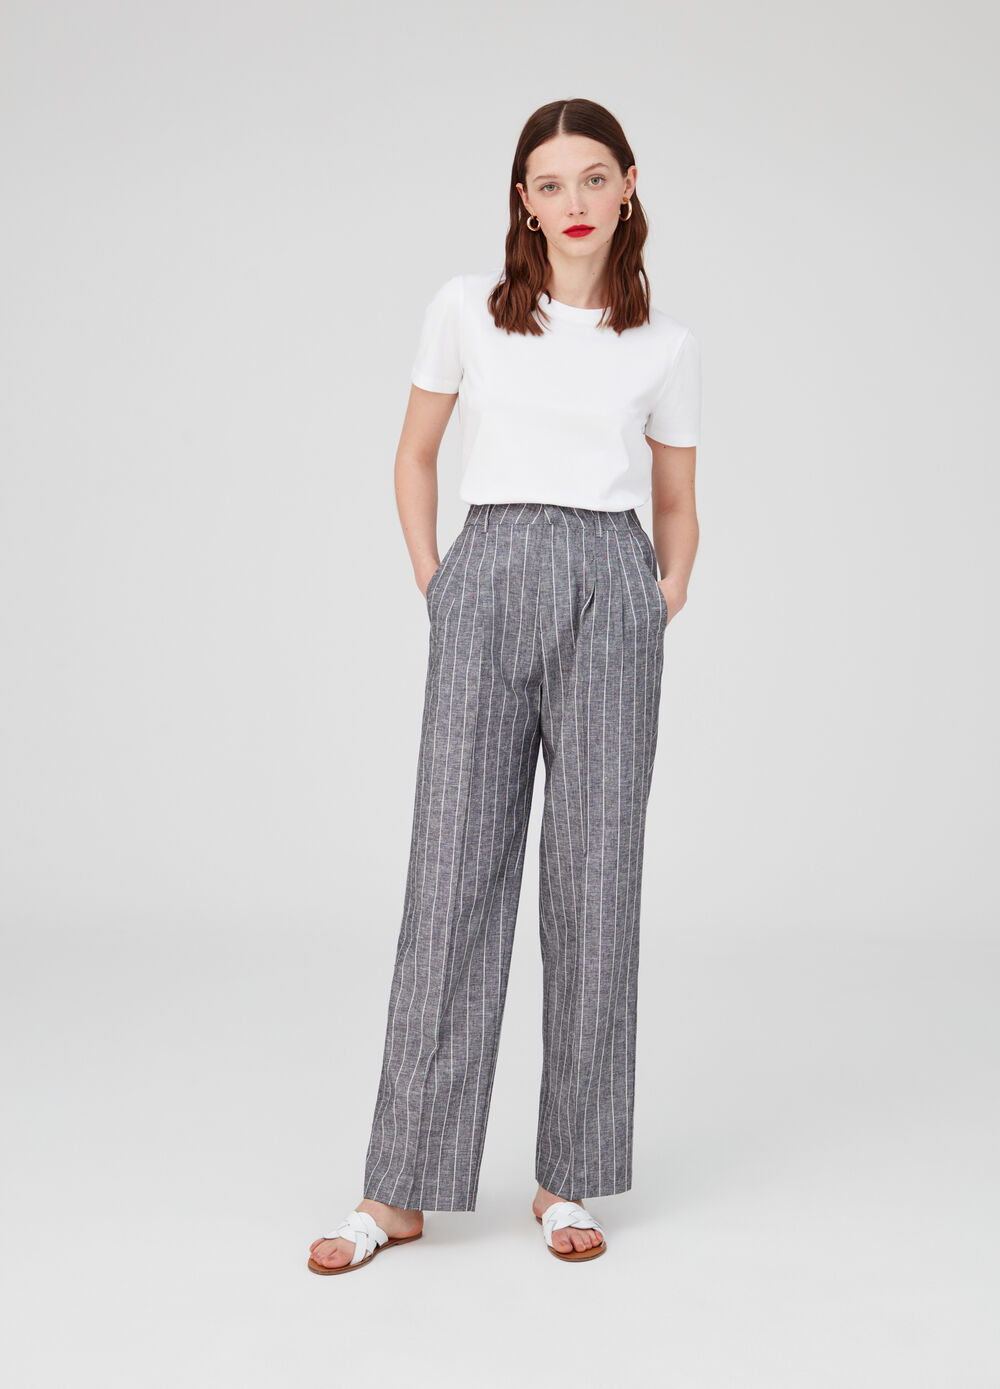 High-waisted trousers in striped cotton and linen